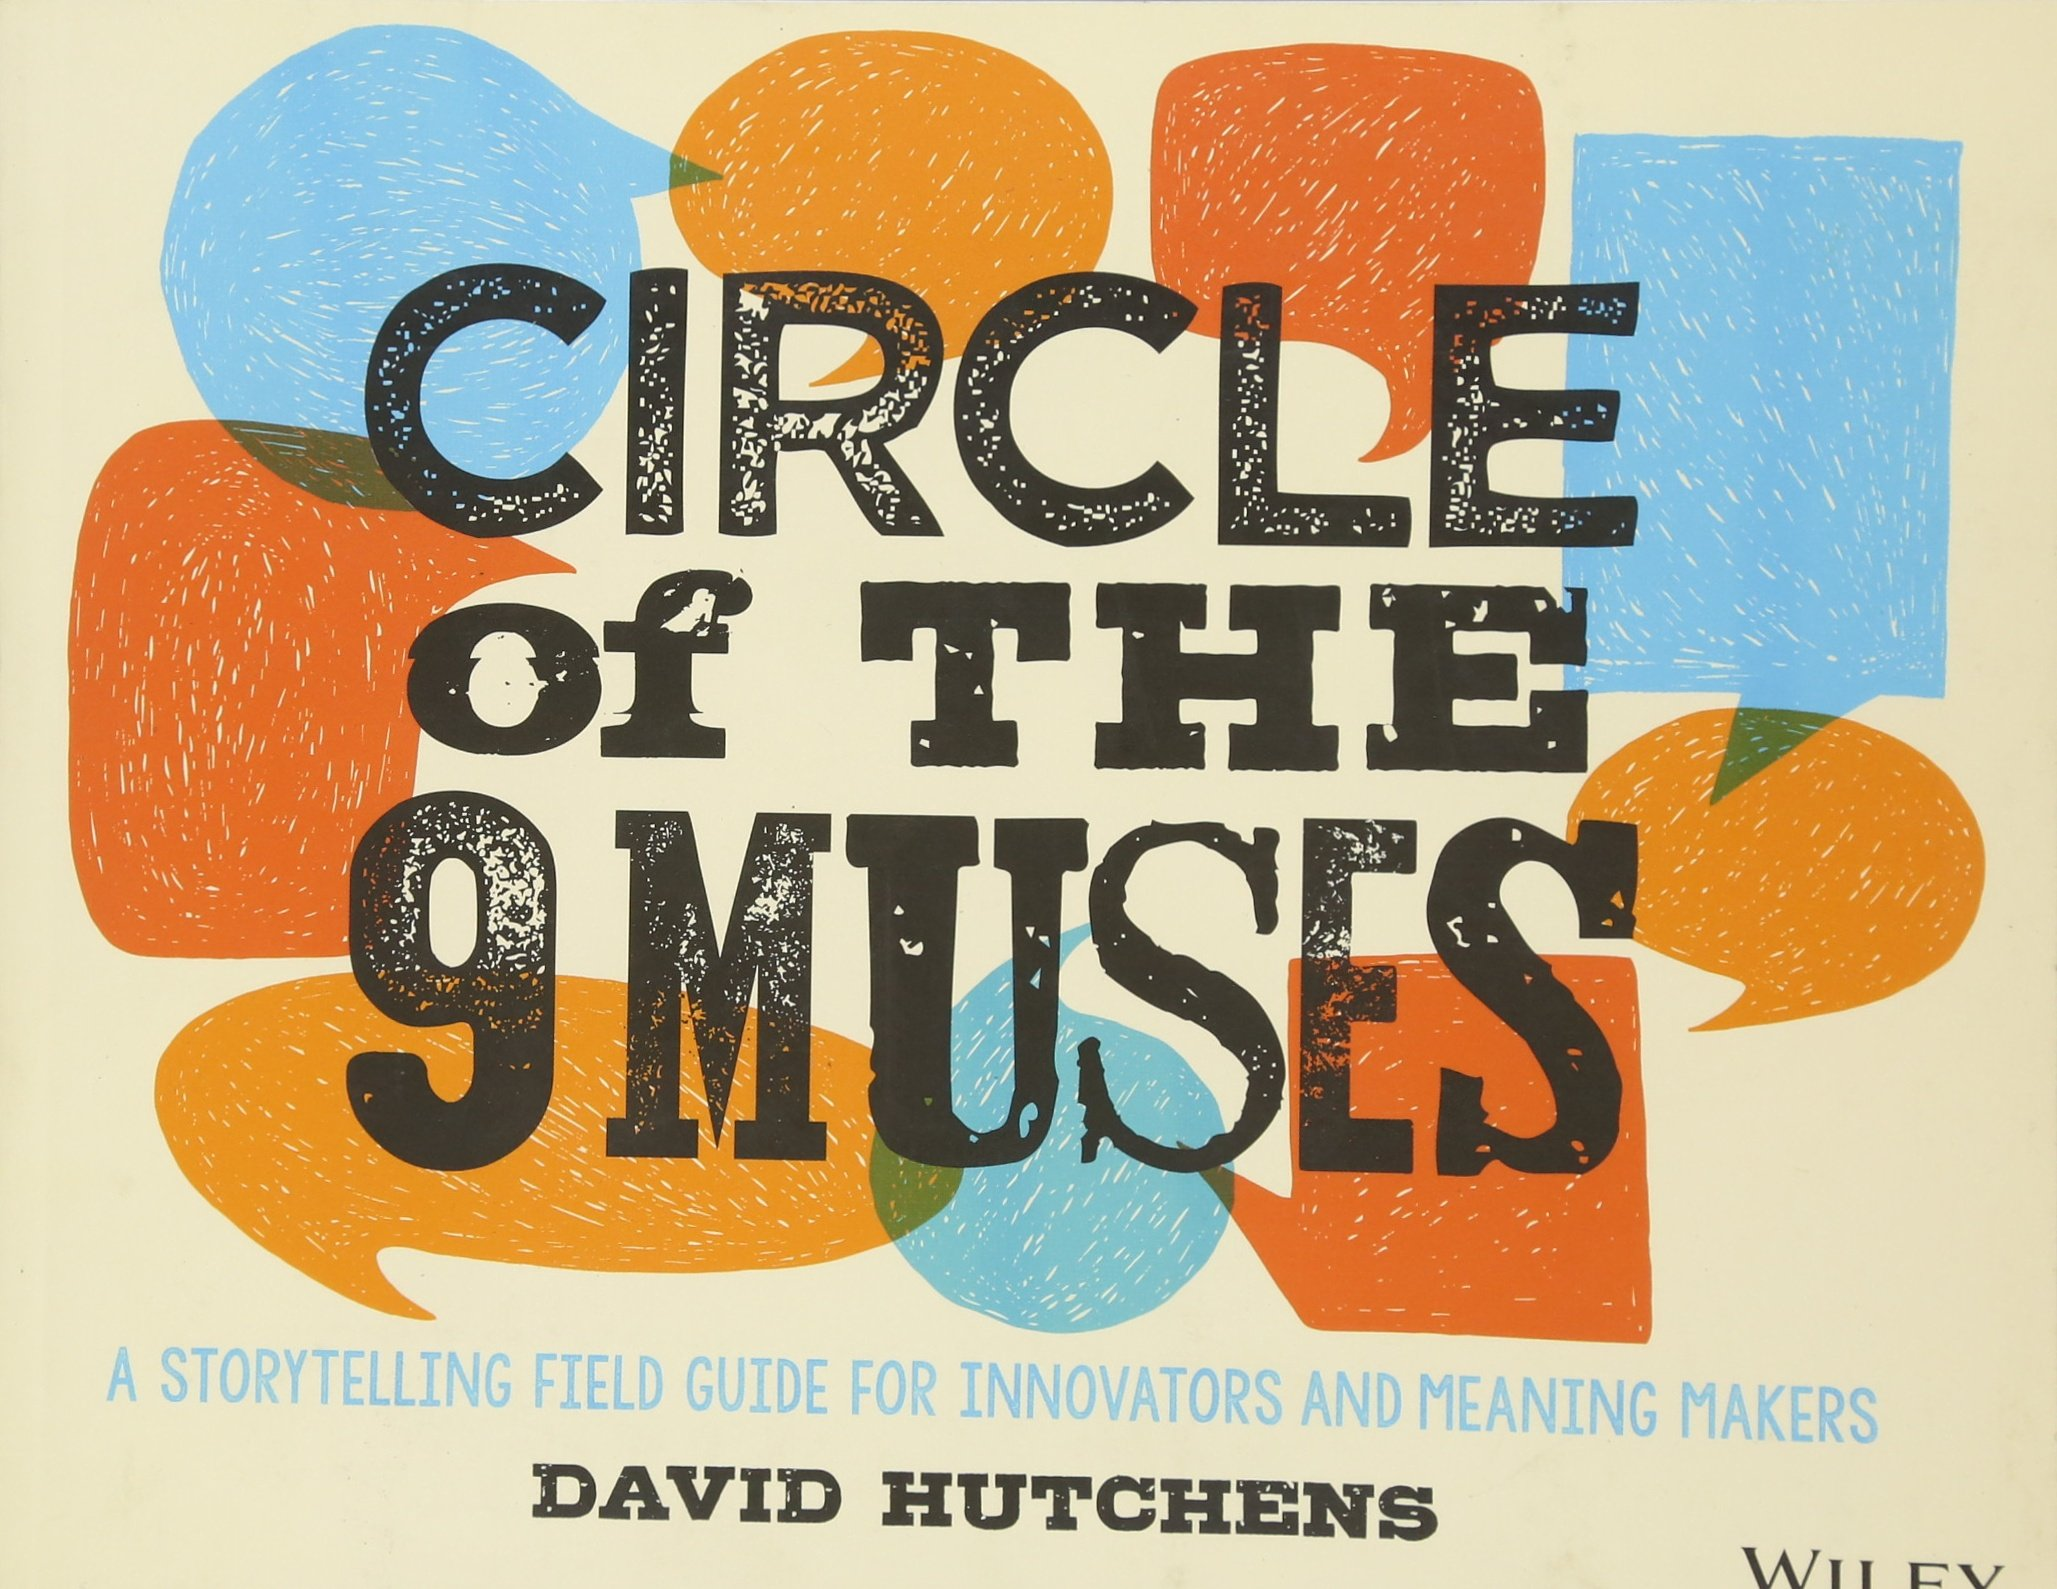 Circle of the 9 Muses A Storytelling Field Guide for Innovators and Meaning Makers - David Hutchens - reviews, quotes, summary